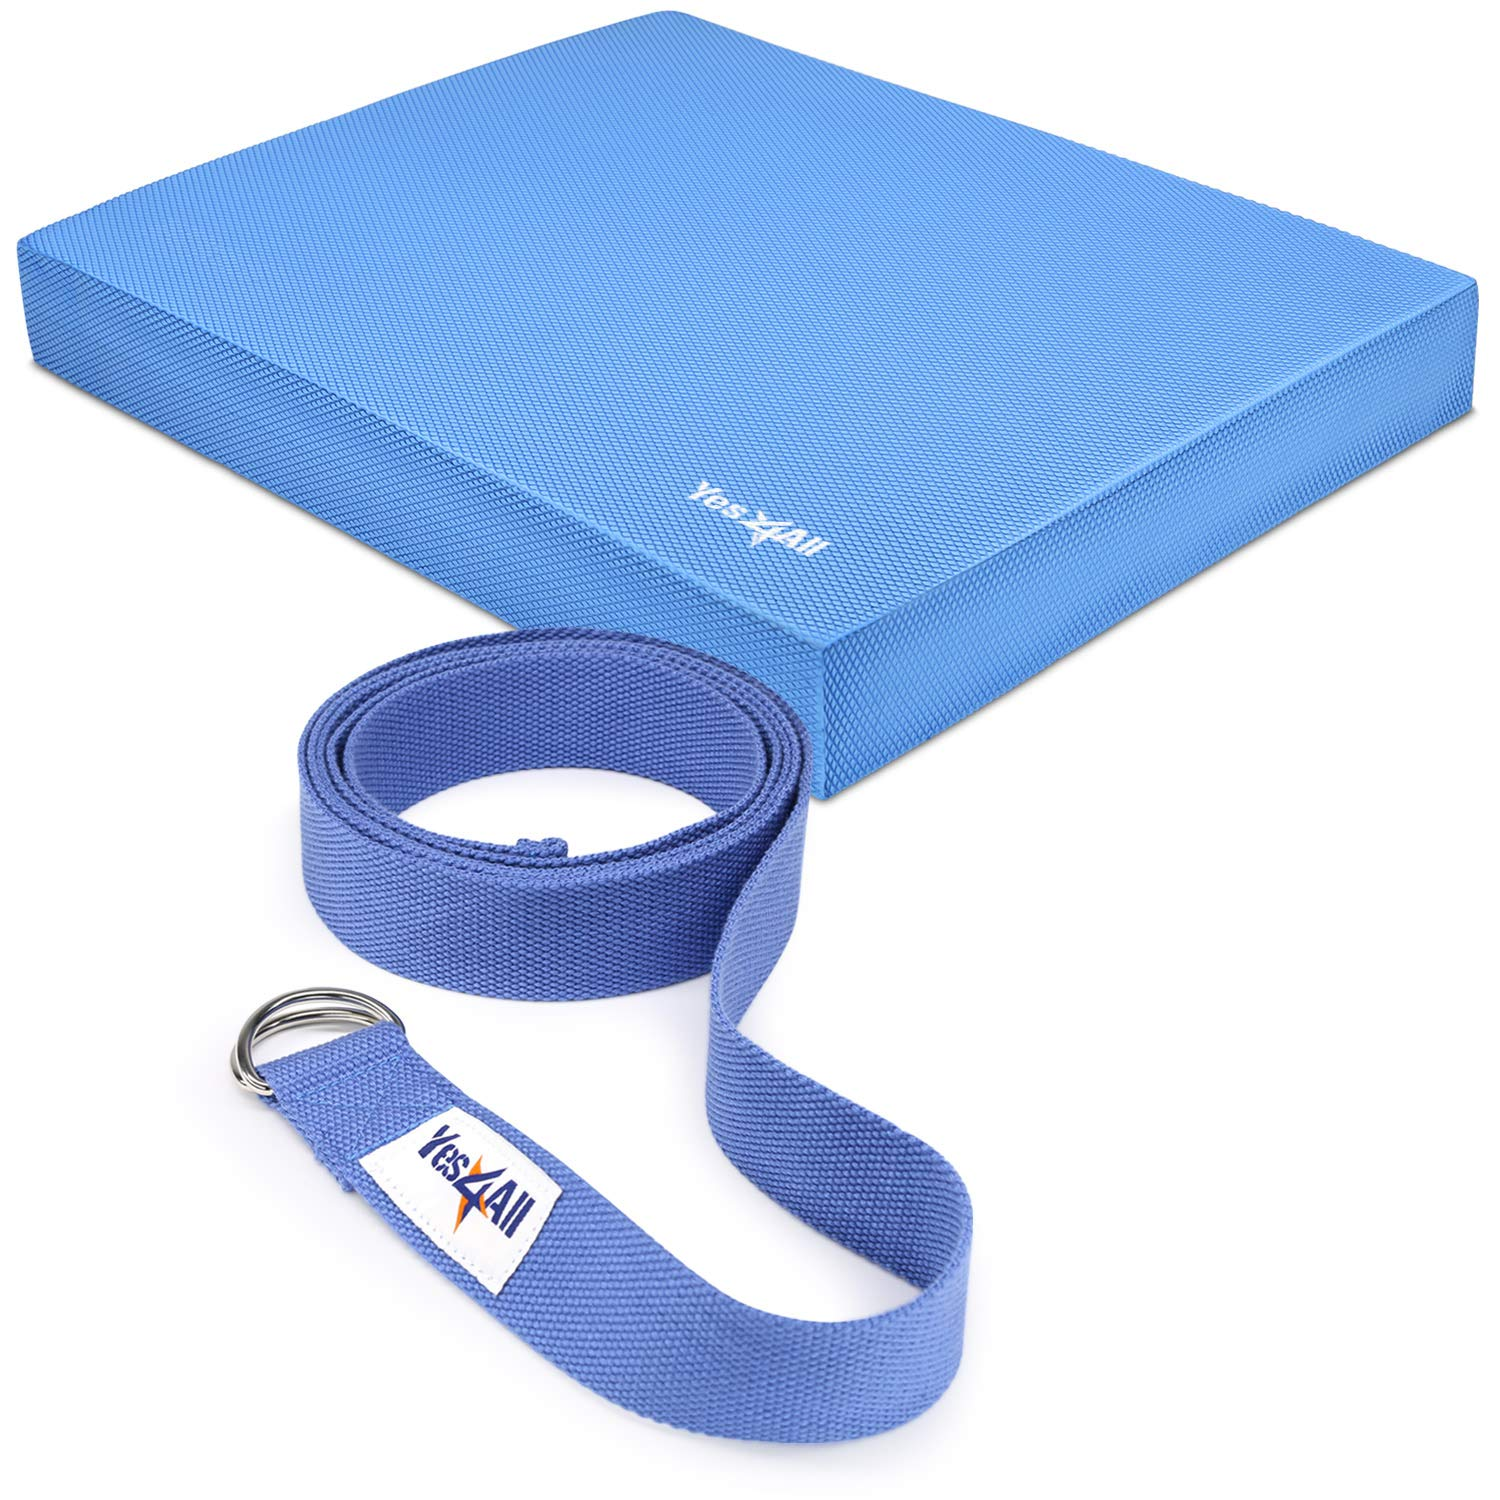 Yes4All Balance Pad Large - Exercise Foam Cushion (Blue) and Yoga Straps (8 Feet) by Yes4All